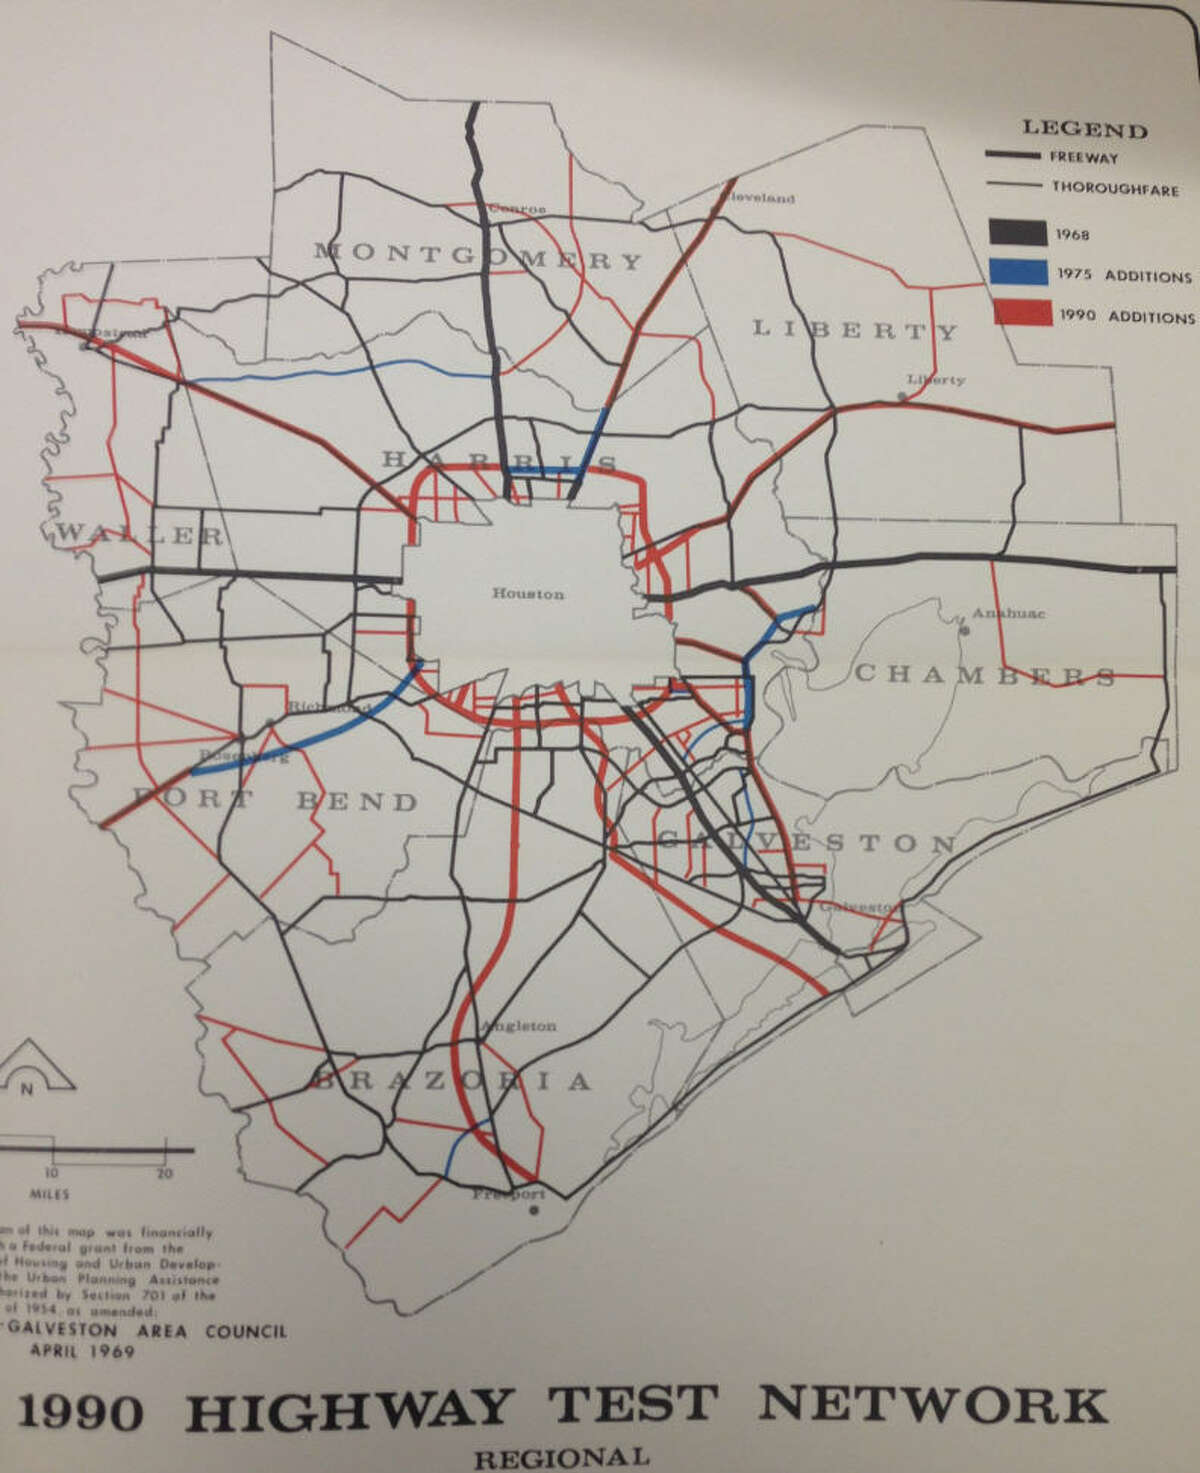 1969 plan for development of Houston freeways by 1990, presented by Houston-Galveston Area Council.